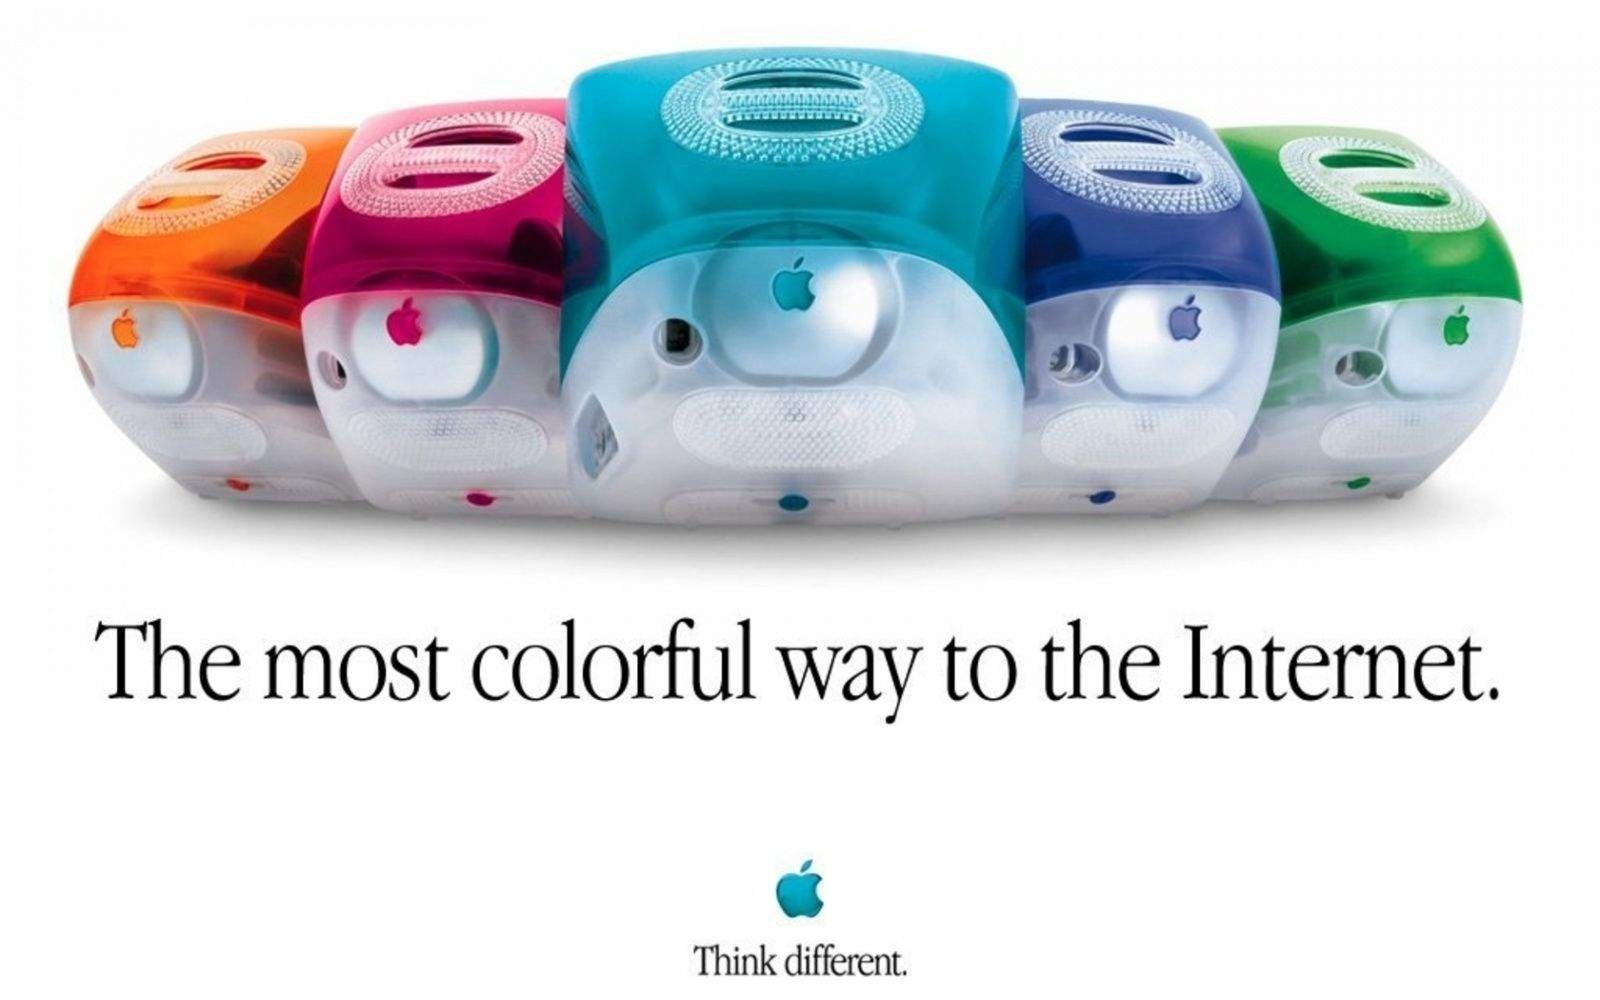 Could this image be the key to what Apple will announce on October 16th?